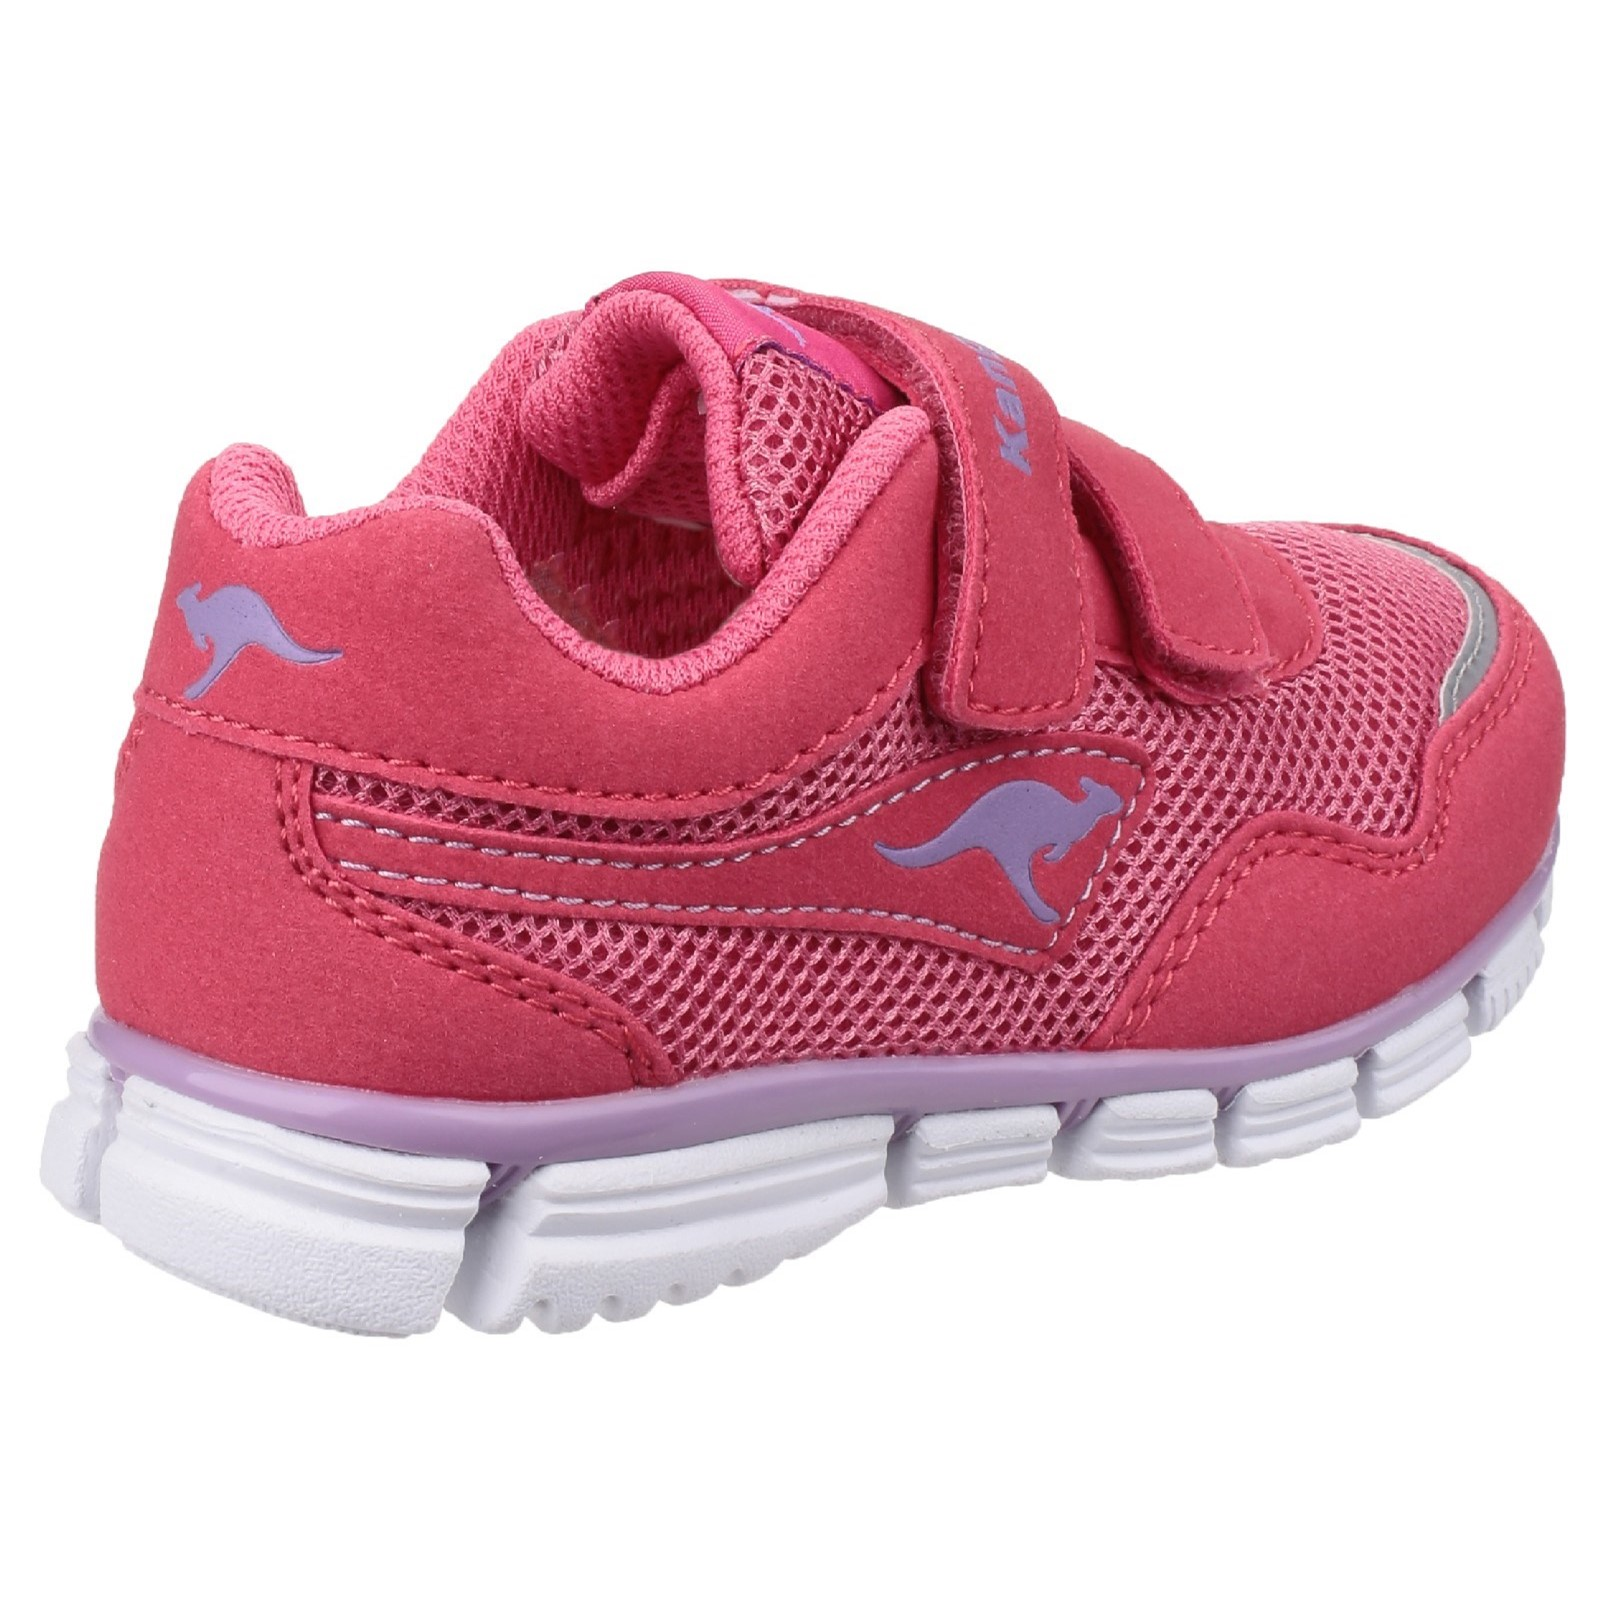 KangaRoos Lasic - Baskets - Enfant 7p174PBUju